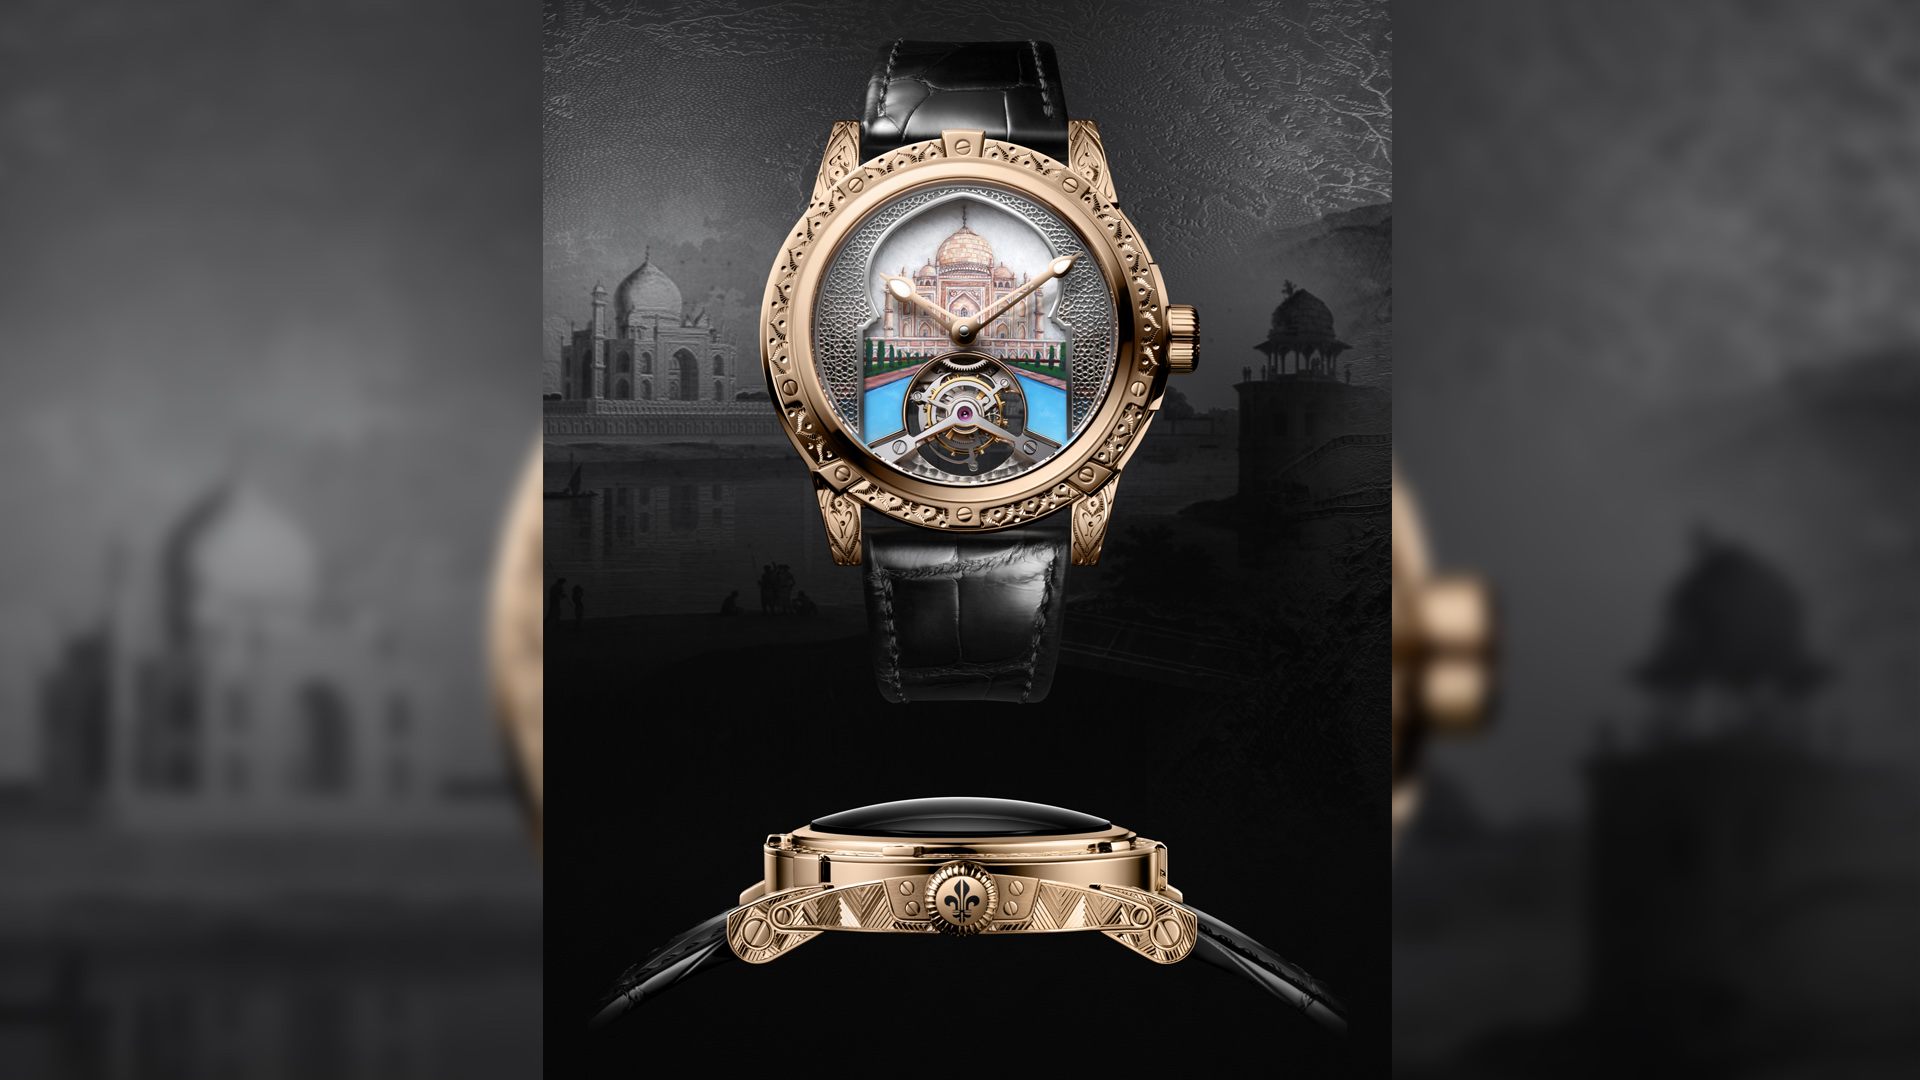 Louis Moinet pays tribute to eight marvels of the world in eight distinct timepieces